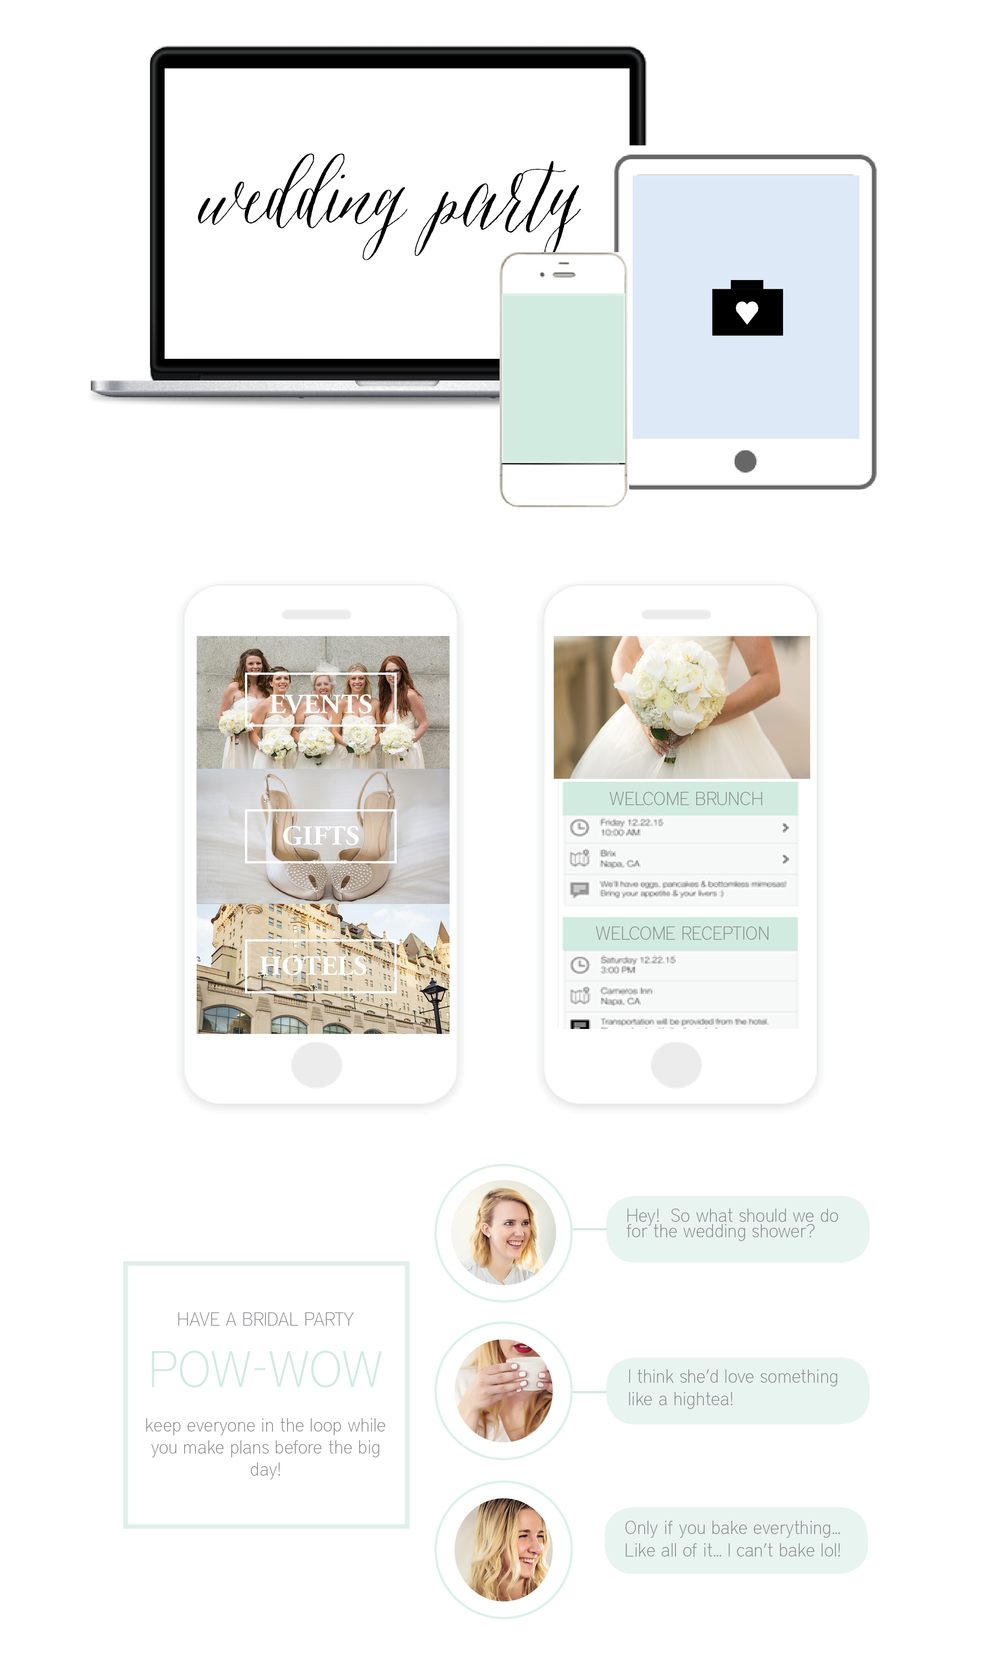 Wedding Party App.jpg